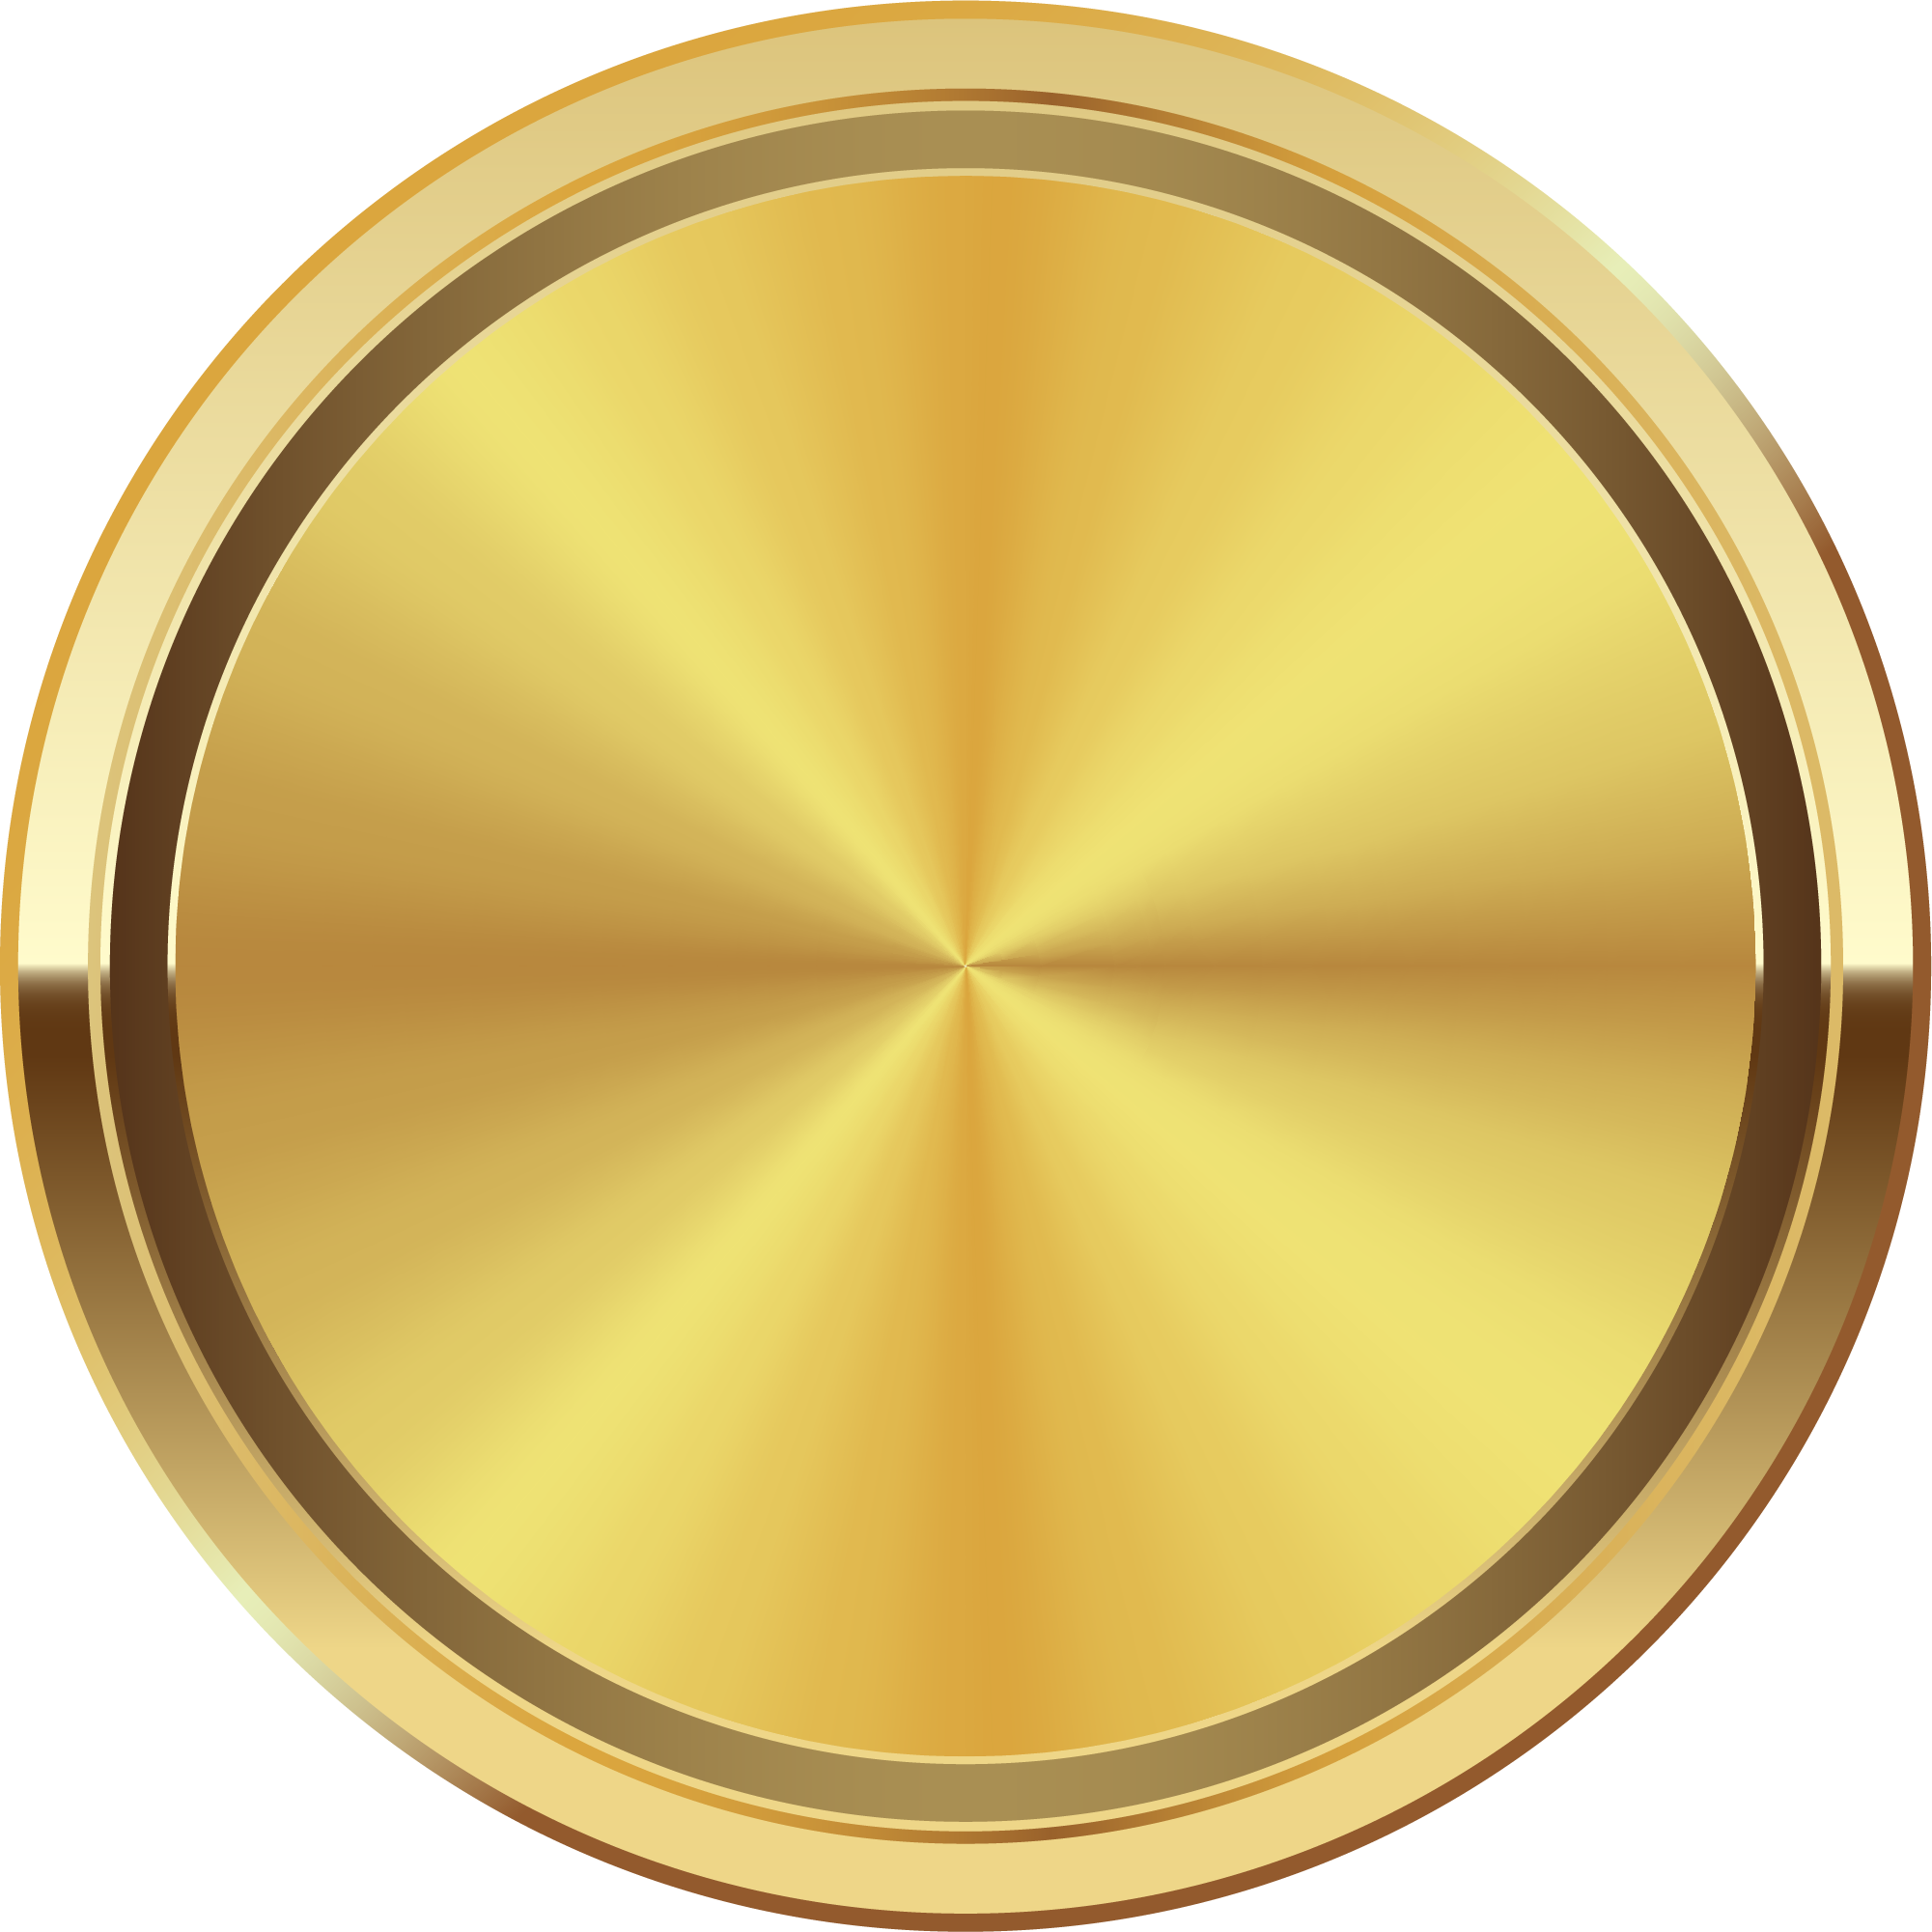 Gold circle png. Golden disk hand painted